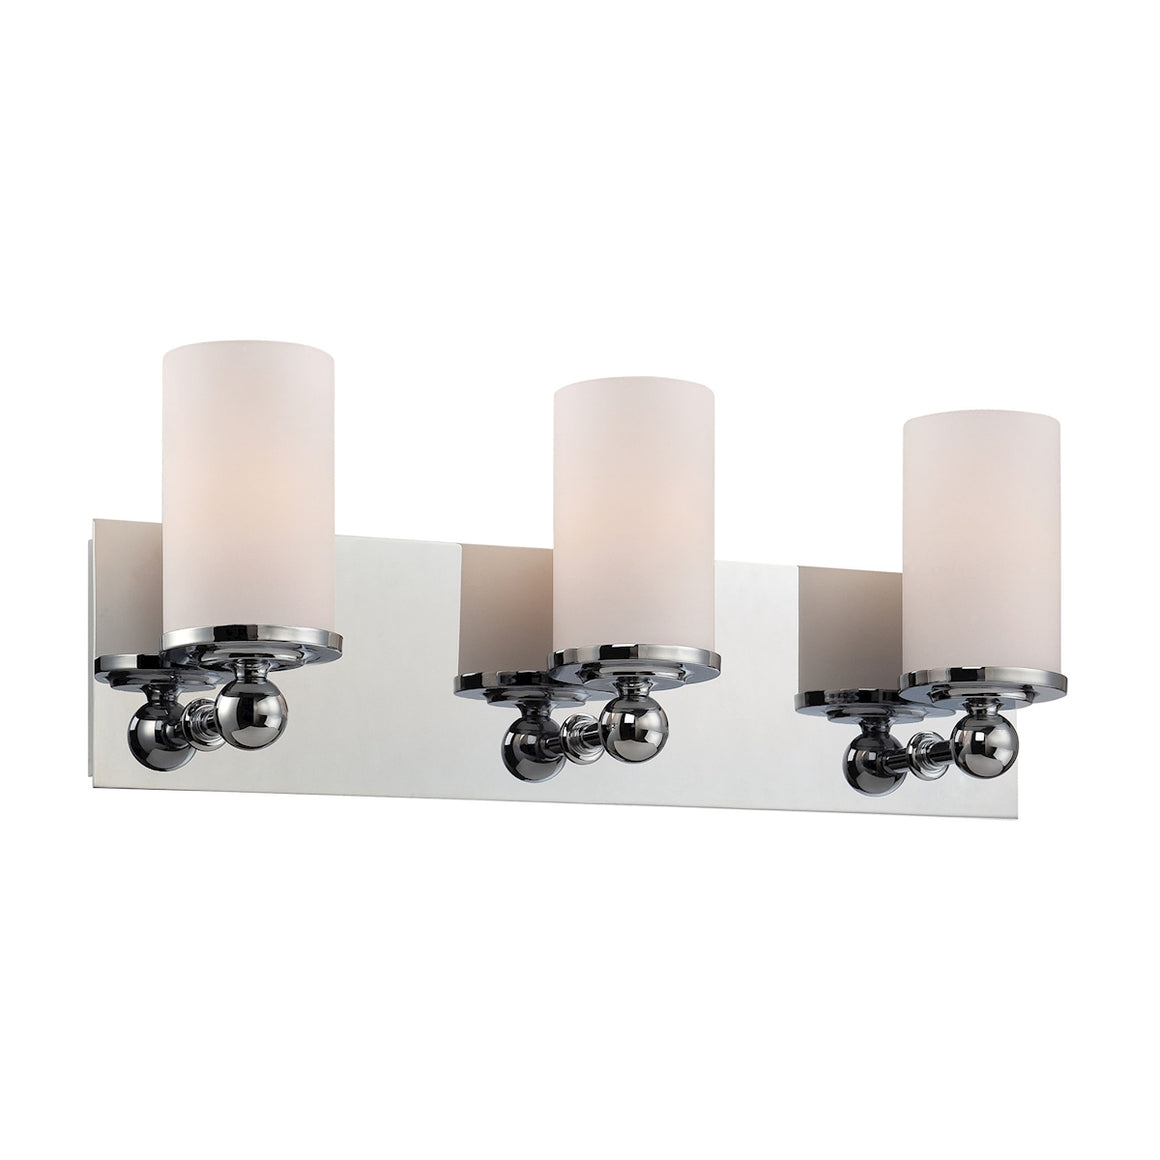 Adam 3 Light Vanity In Chrome And White Opal Glass BV2243-10-15 by Elk Lighting